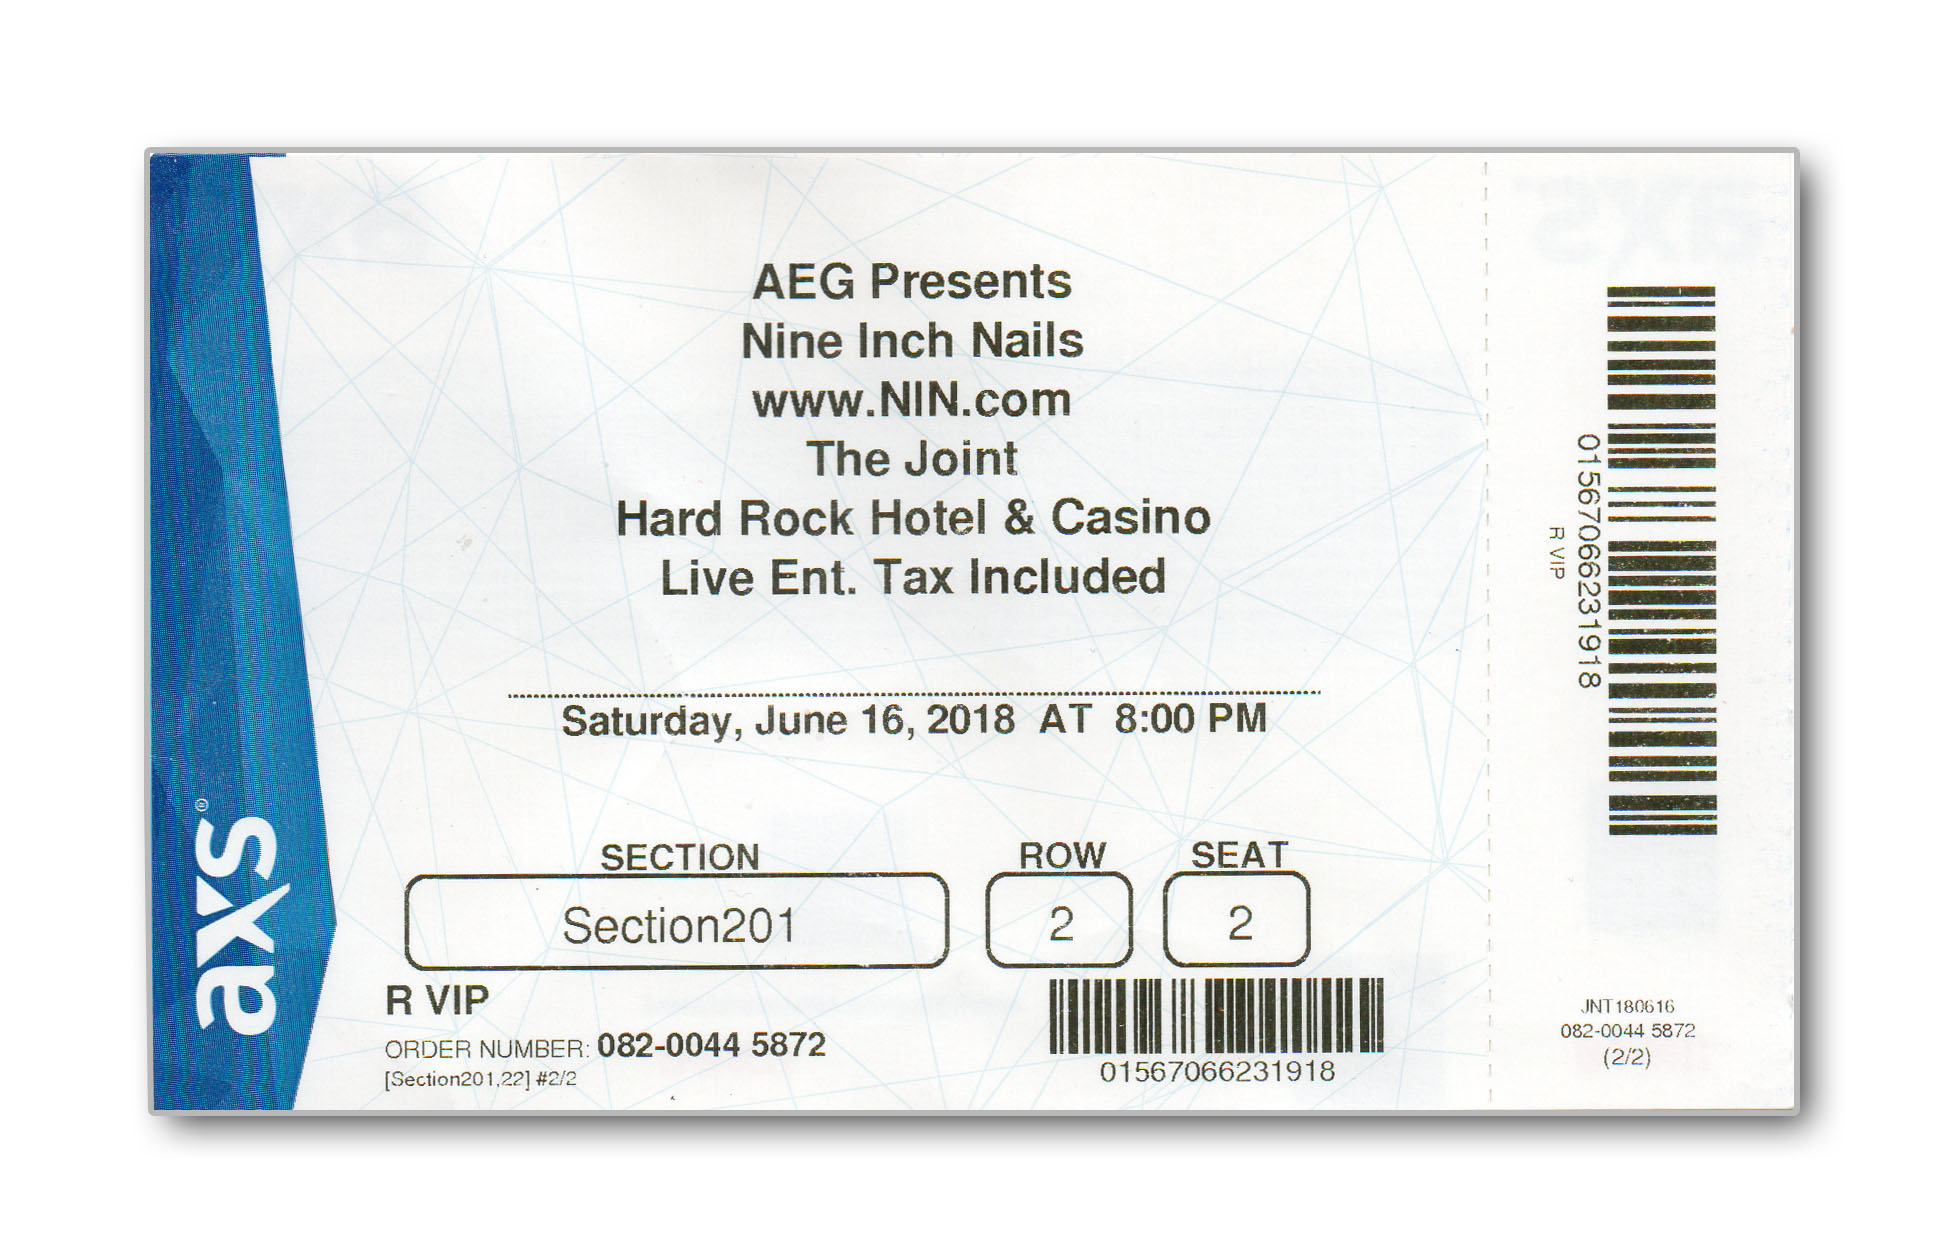 Vegas 3 06/16/2018 Ticket